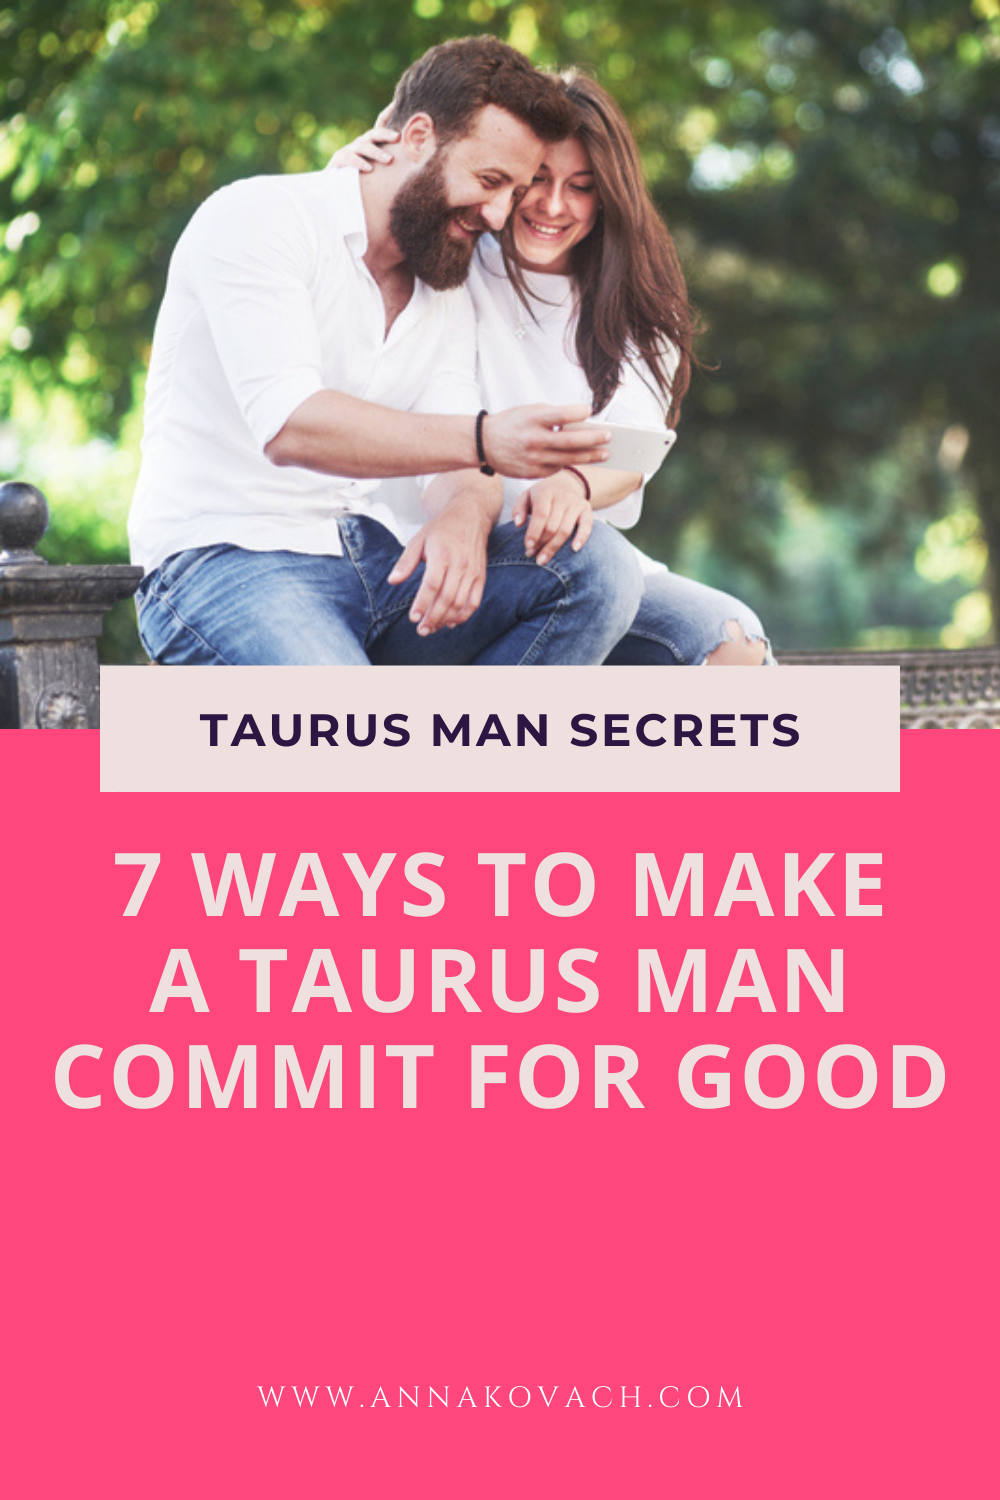 7 Ways To Make A Taurus Man Commit For Good in 2021